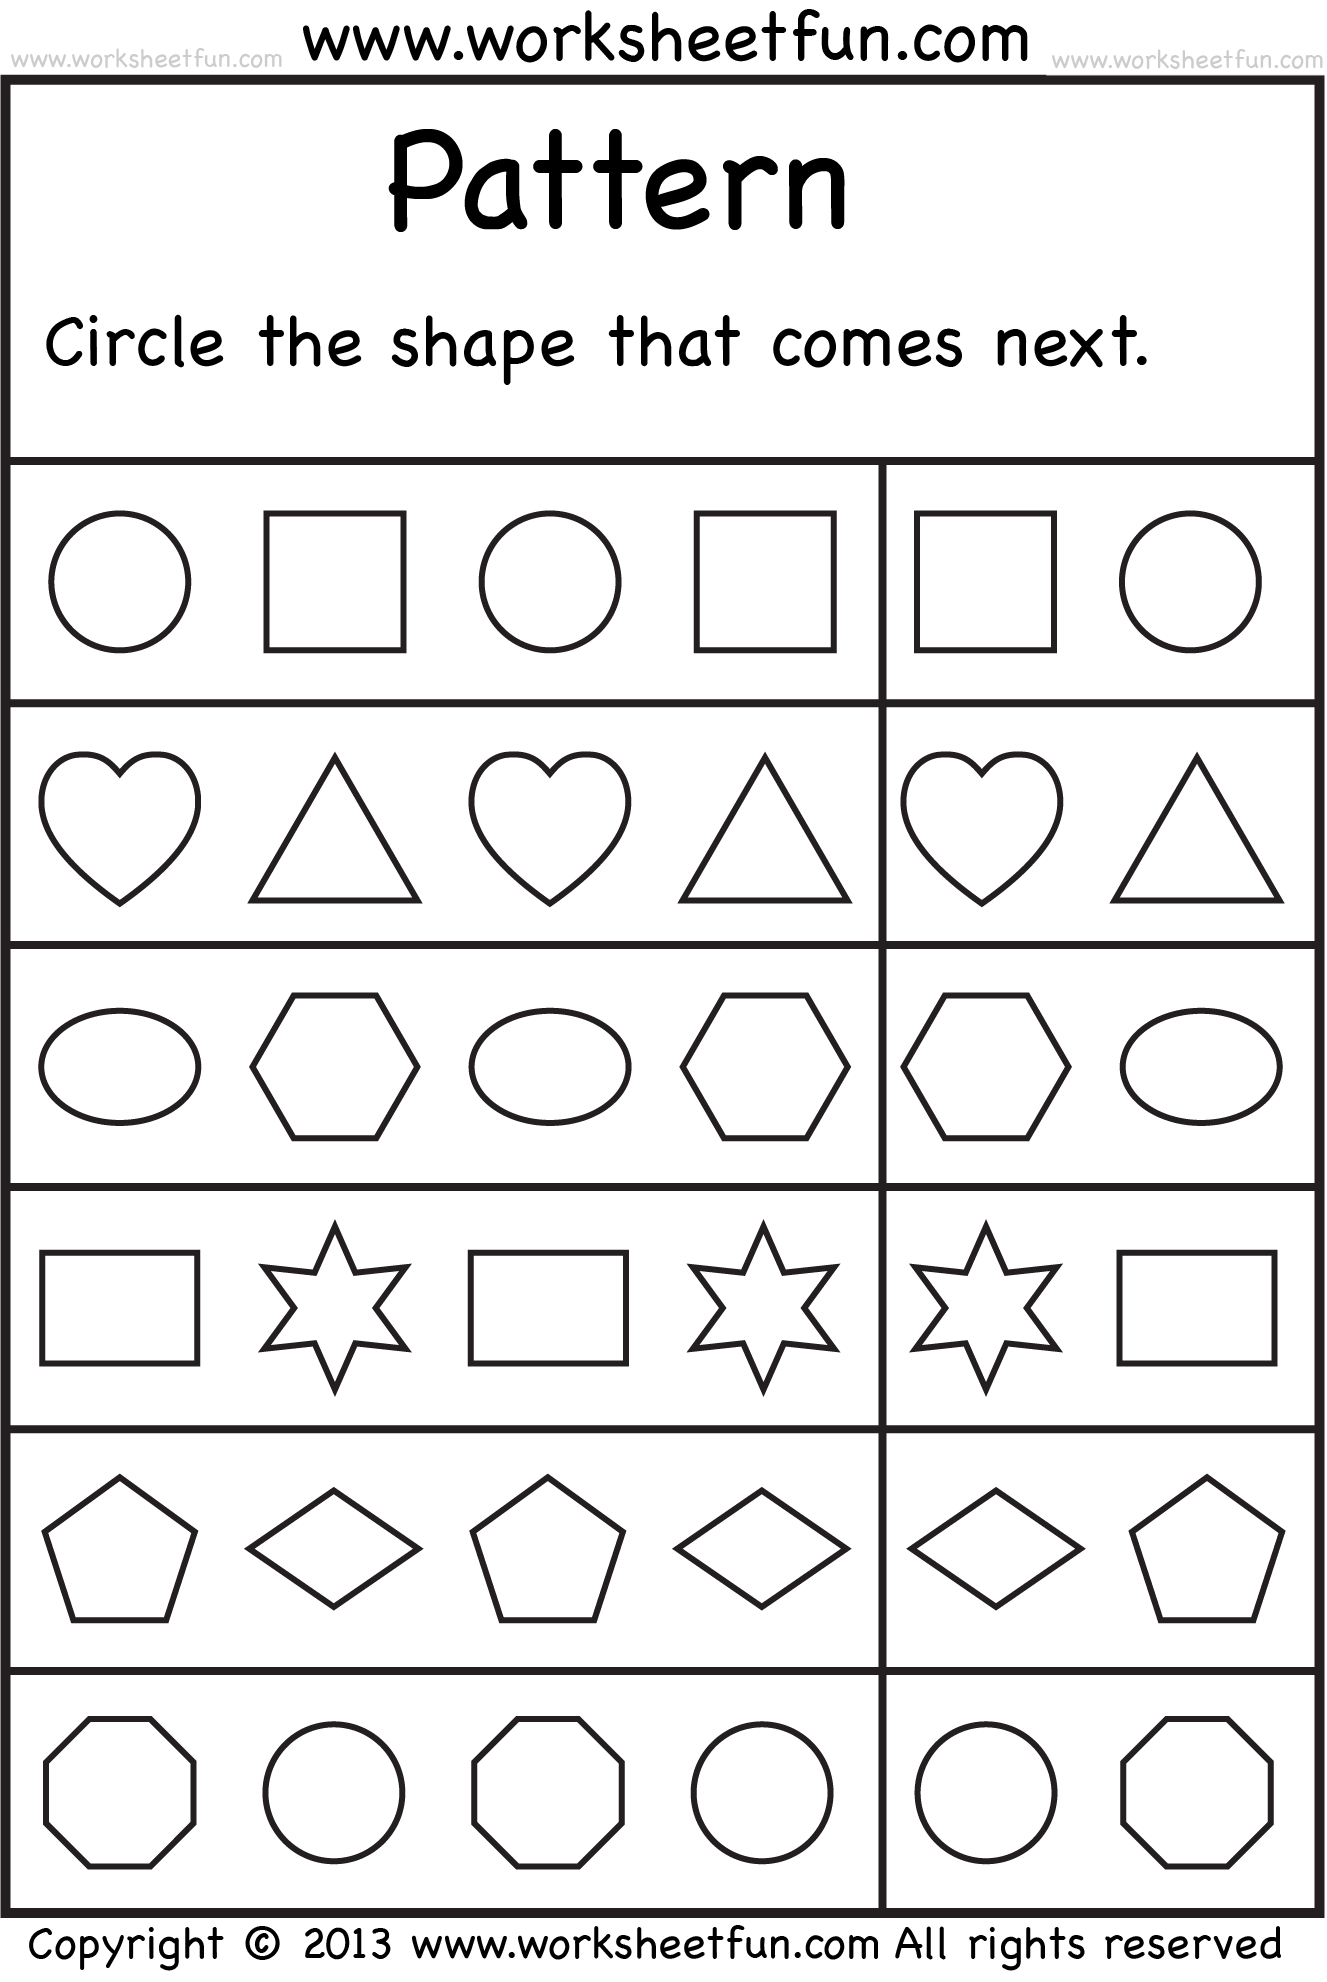 Aldiablosus  Terrific  Images About School Worksheets On Pinterest  Number Words  With Exquisite  Images About School Worksheets On Pinterest  Number Words Alphabet Worksheets And Free Printable Kindergarten Worksheets With Comely Draw And Write Worksheet Also Worksheets On Distributive Property In Addition Trace Letter Worksheets And Free Printable Fractions Worksheets As Well As Integer Operations Worksheets Additionally Skip Counting By S Worksheet From Pinterestcom With Aldiablosus  Exquisite  Images About School Worksheets On Pinterest  Number Words  With Comely  Images About School Worksheets On Pinterest  Number Words Alphabet Worksheets And Free Printable Kindergarten Worksheets And Terrific Draw And Write Worksheet Also Worksheets On Distributive Property In Addition Trace Letter Worksheets From Pinterestcom